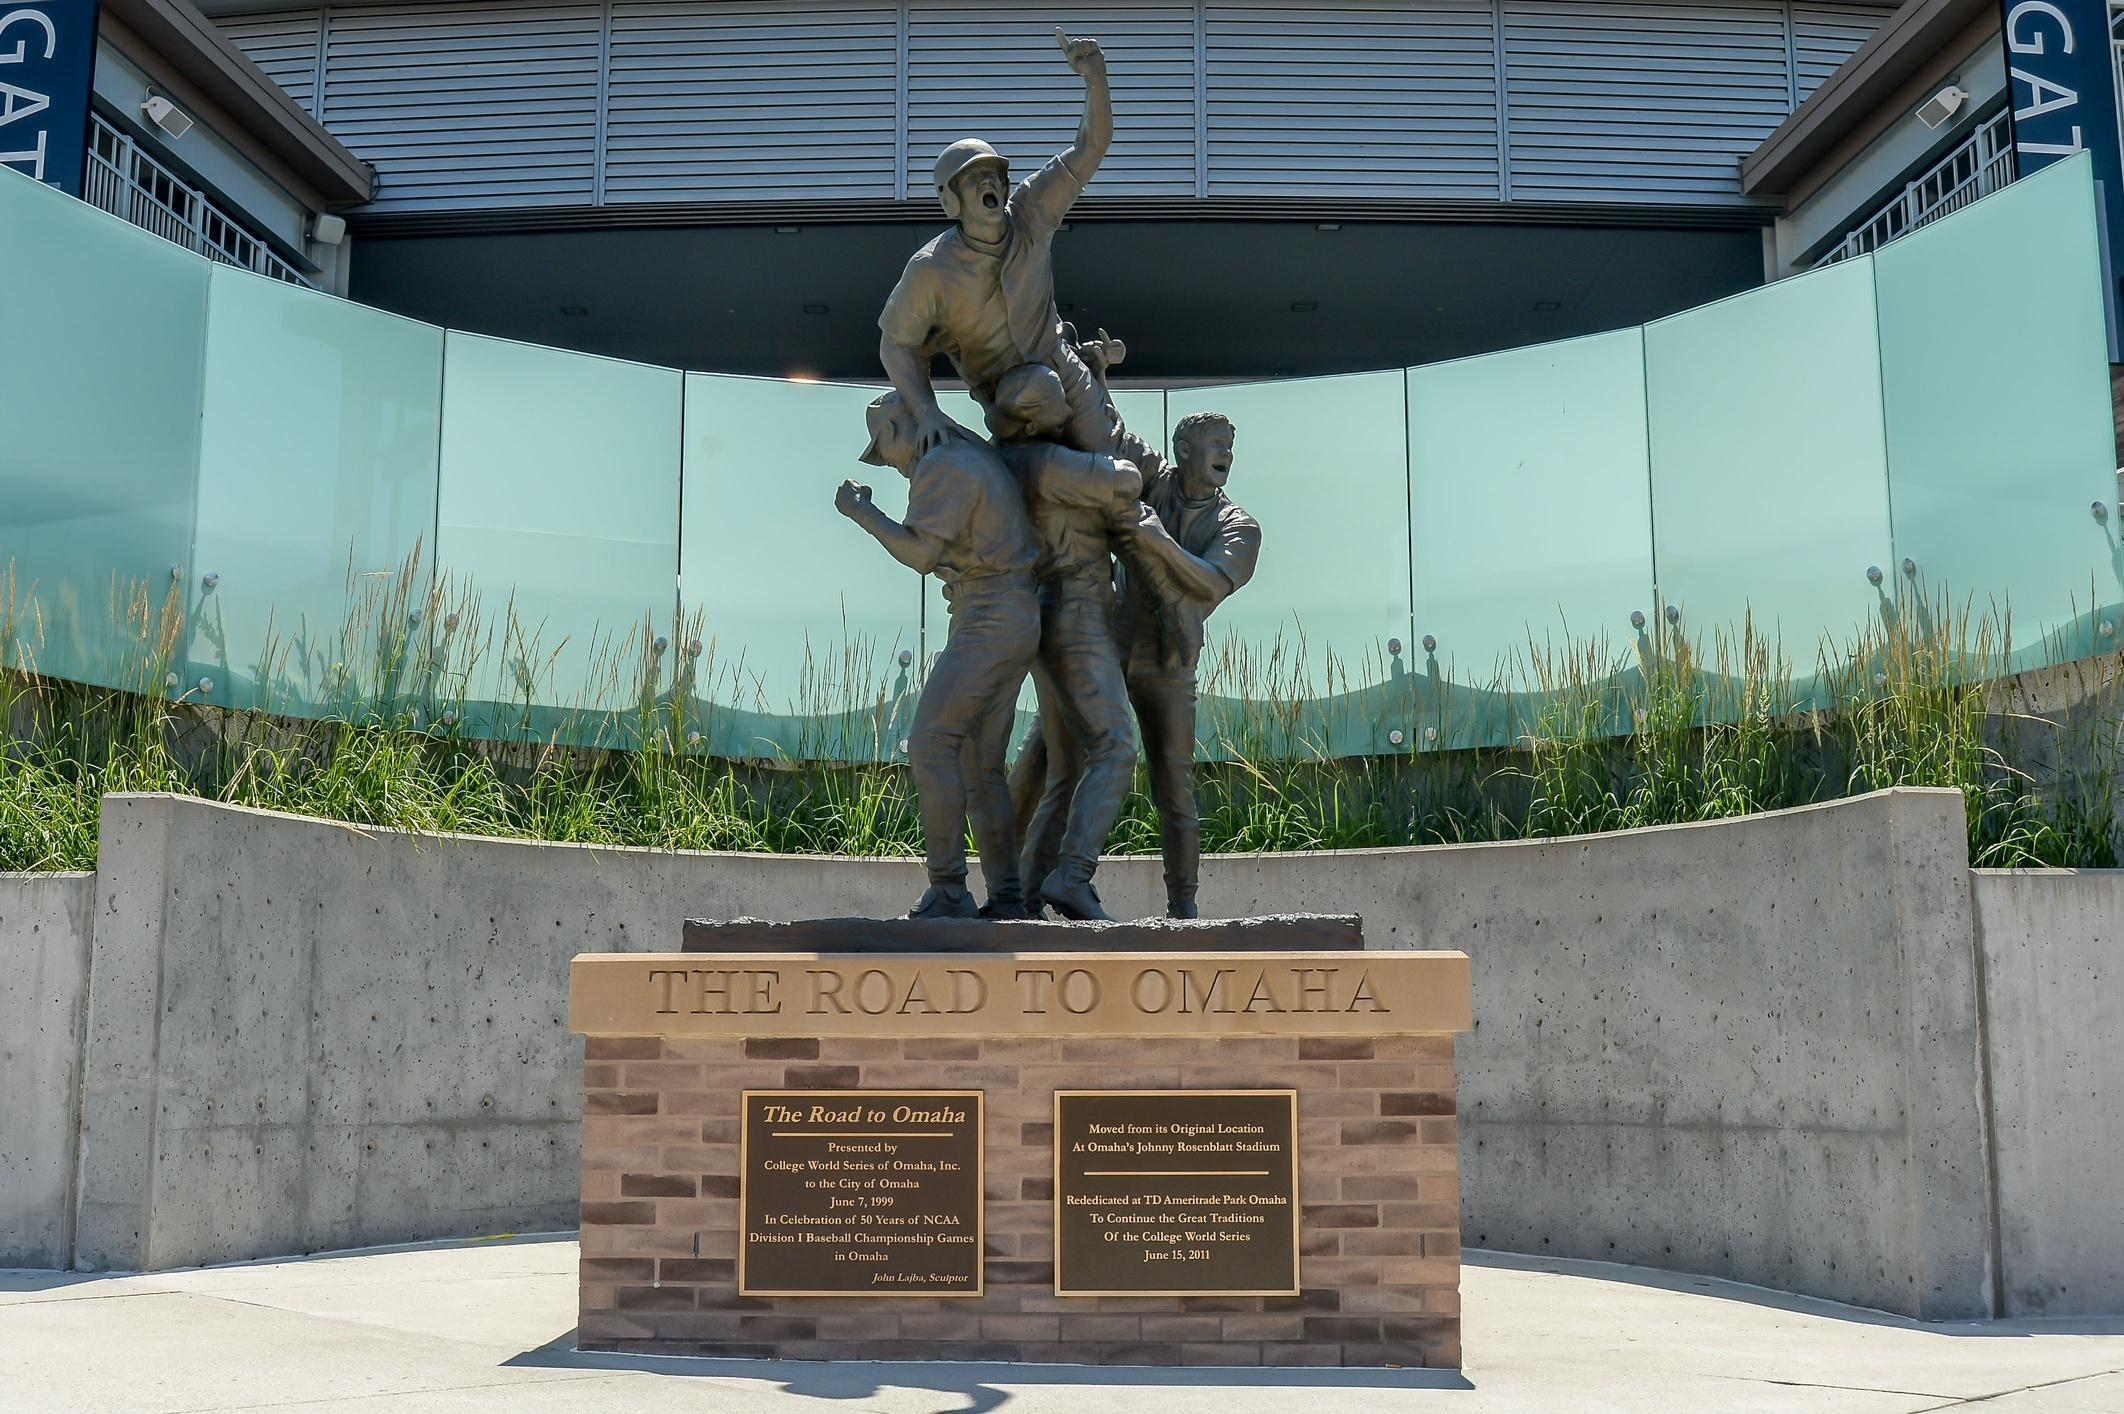 The Road to Omaha statue at the College World Series.